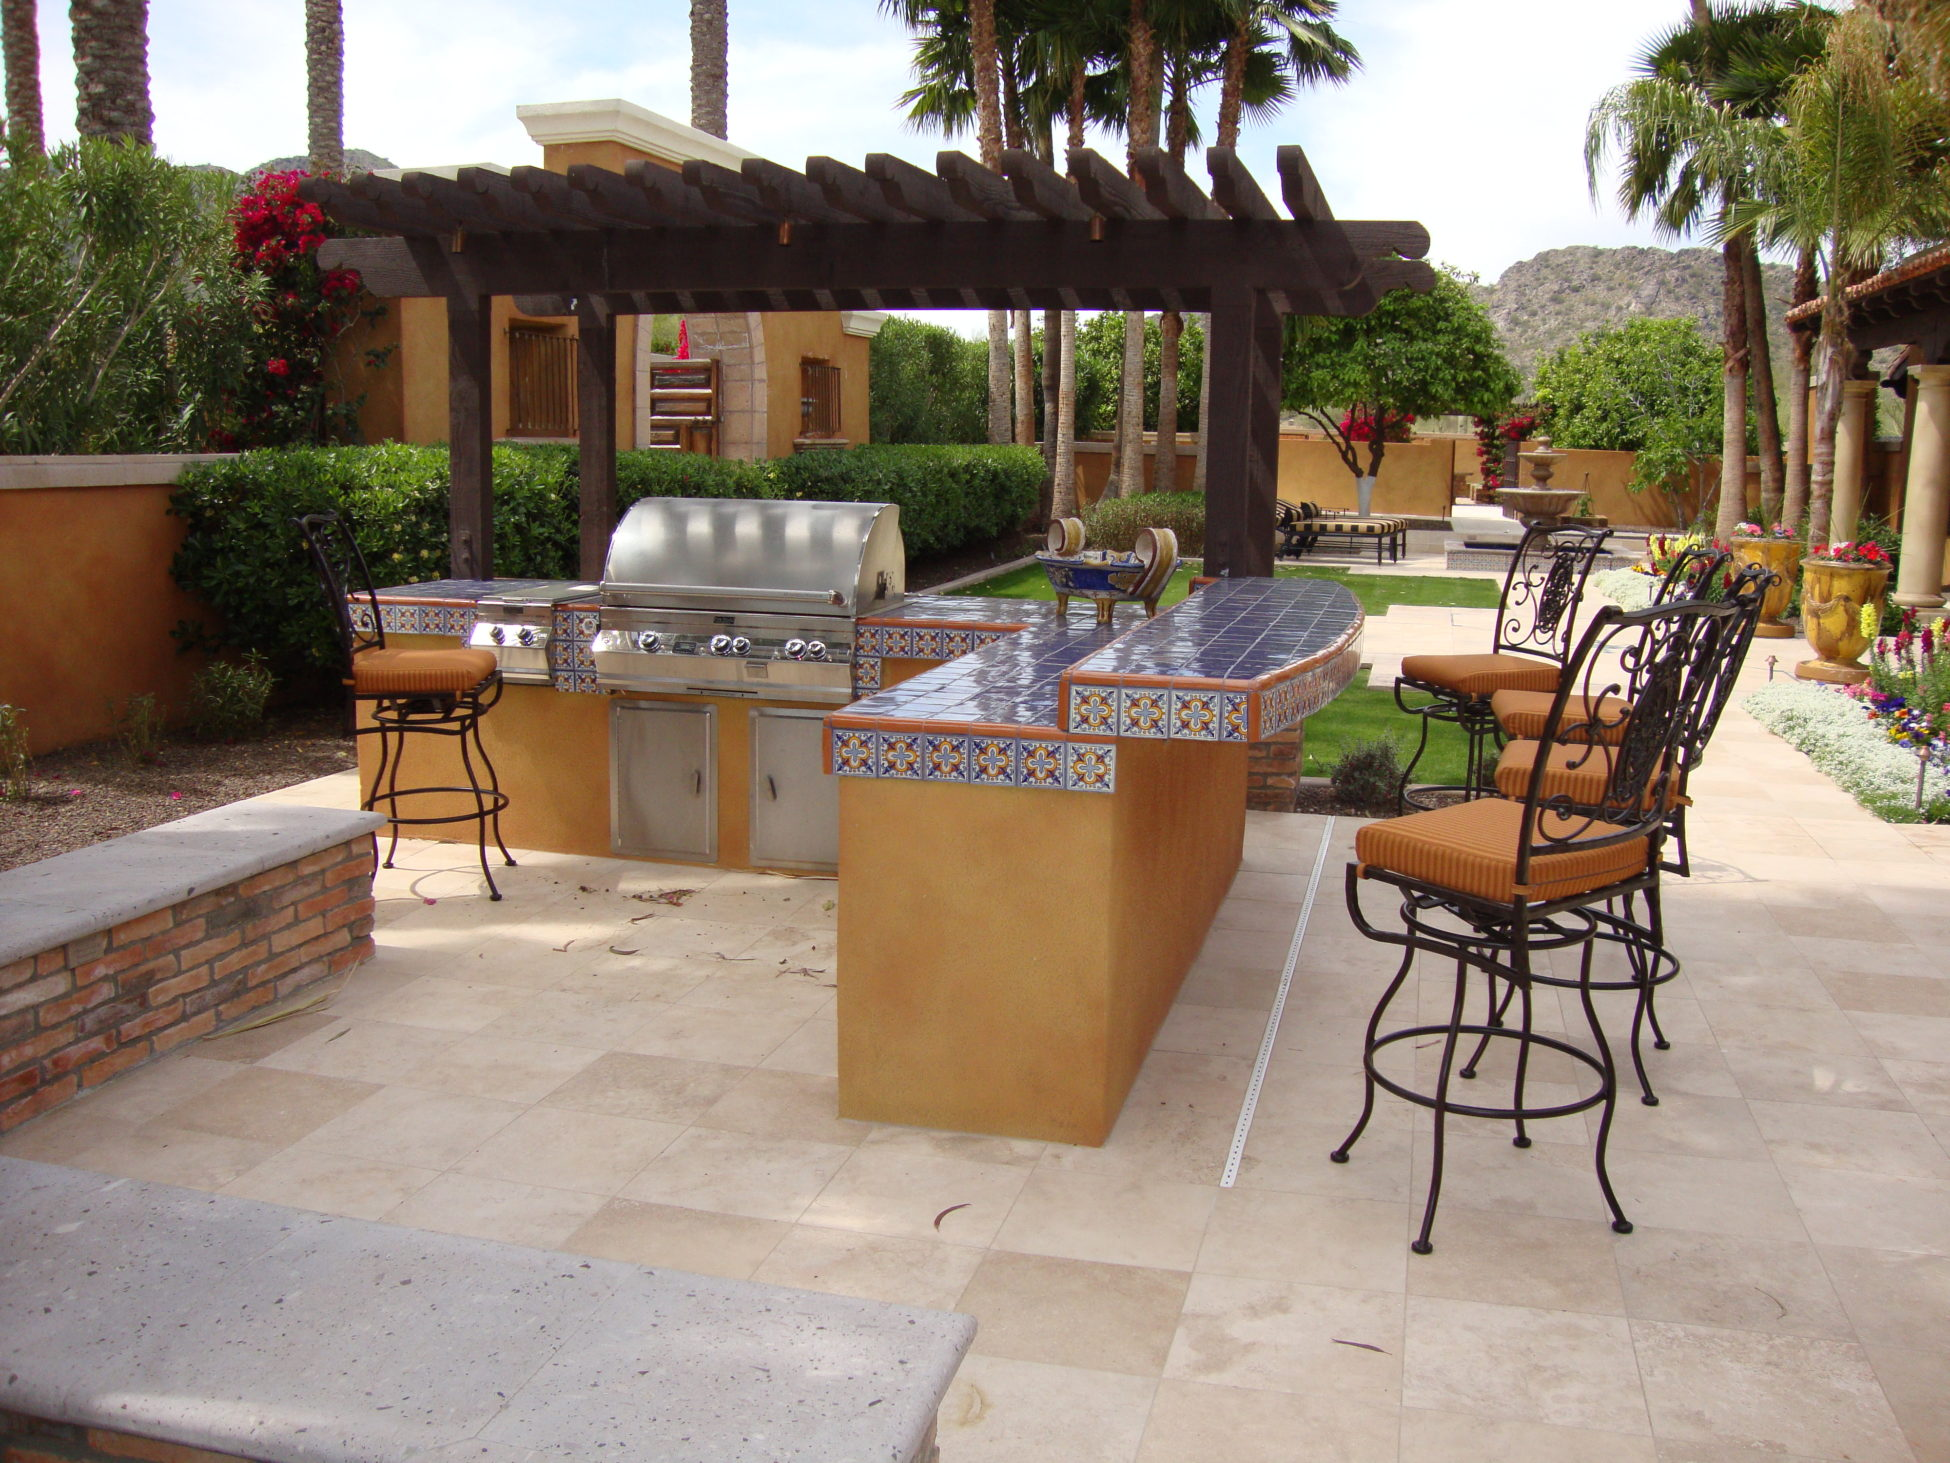 Arizona Outdoor Kitchens Are Great Addition To Backyard Fun! on Outdoor Kitchen Patio id=18252